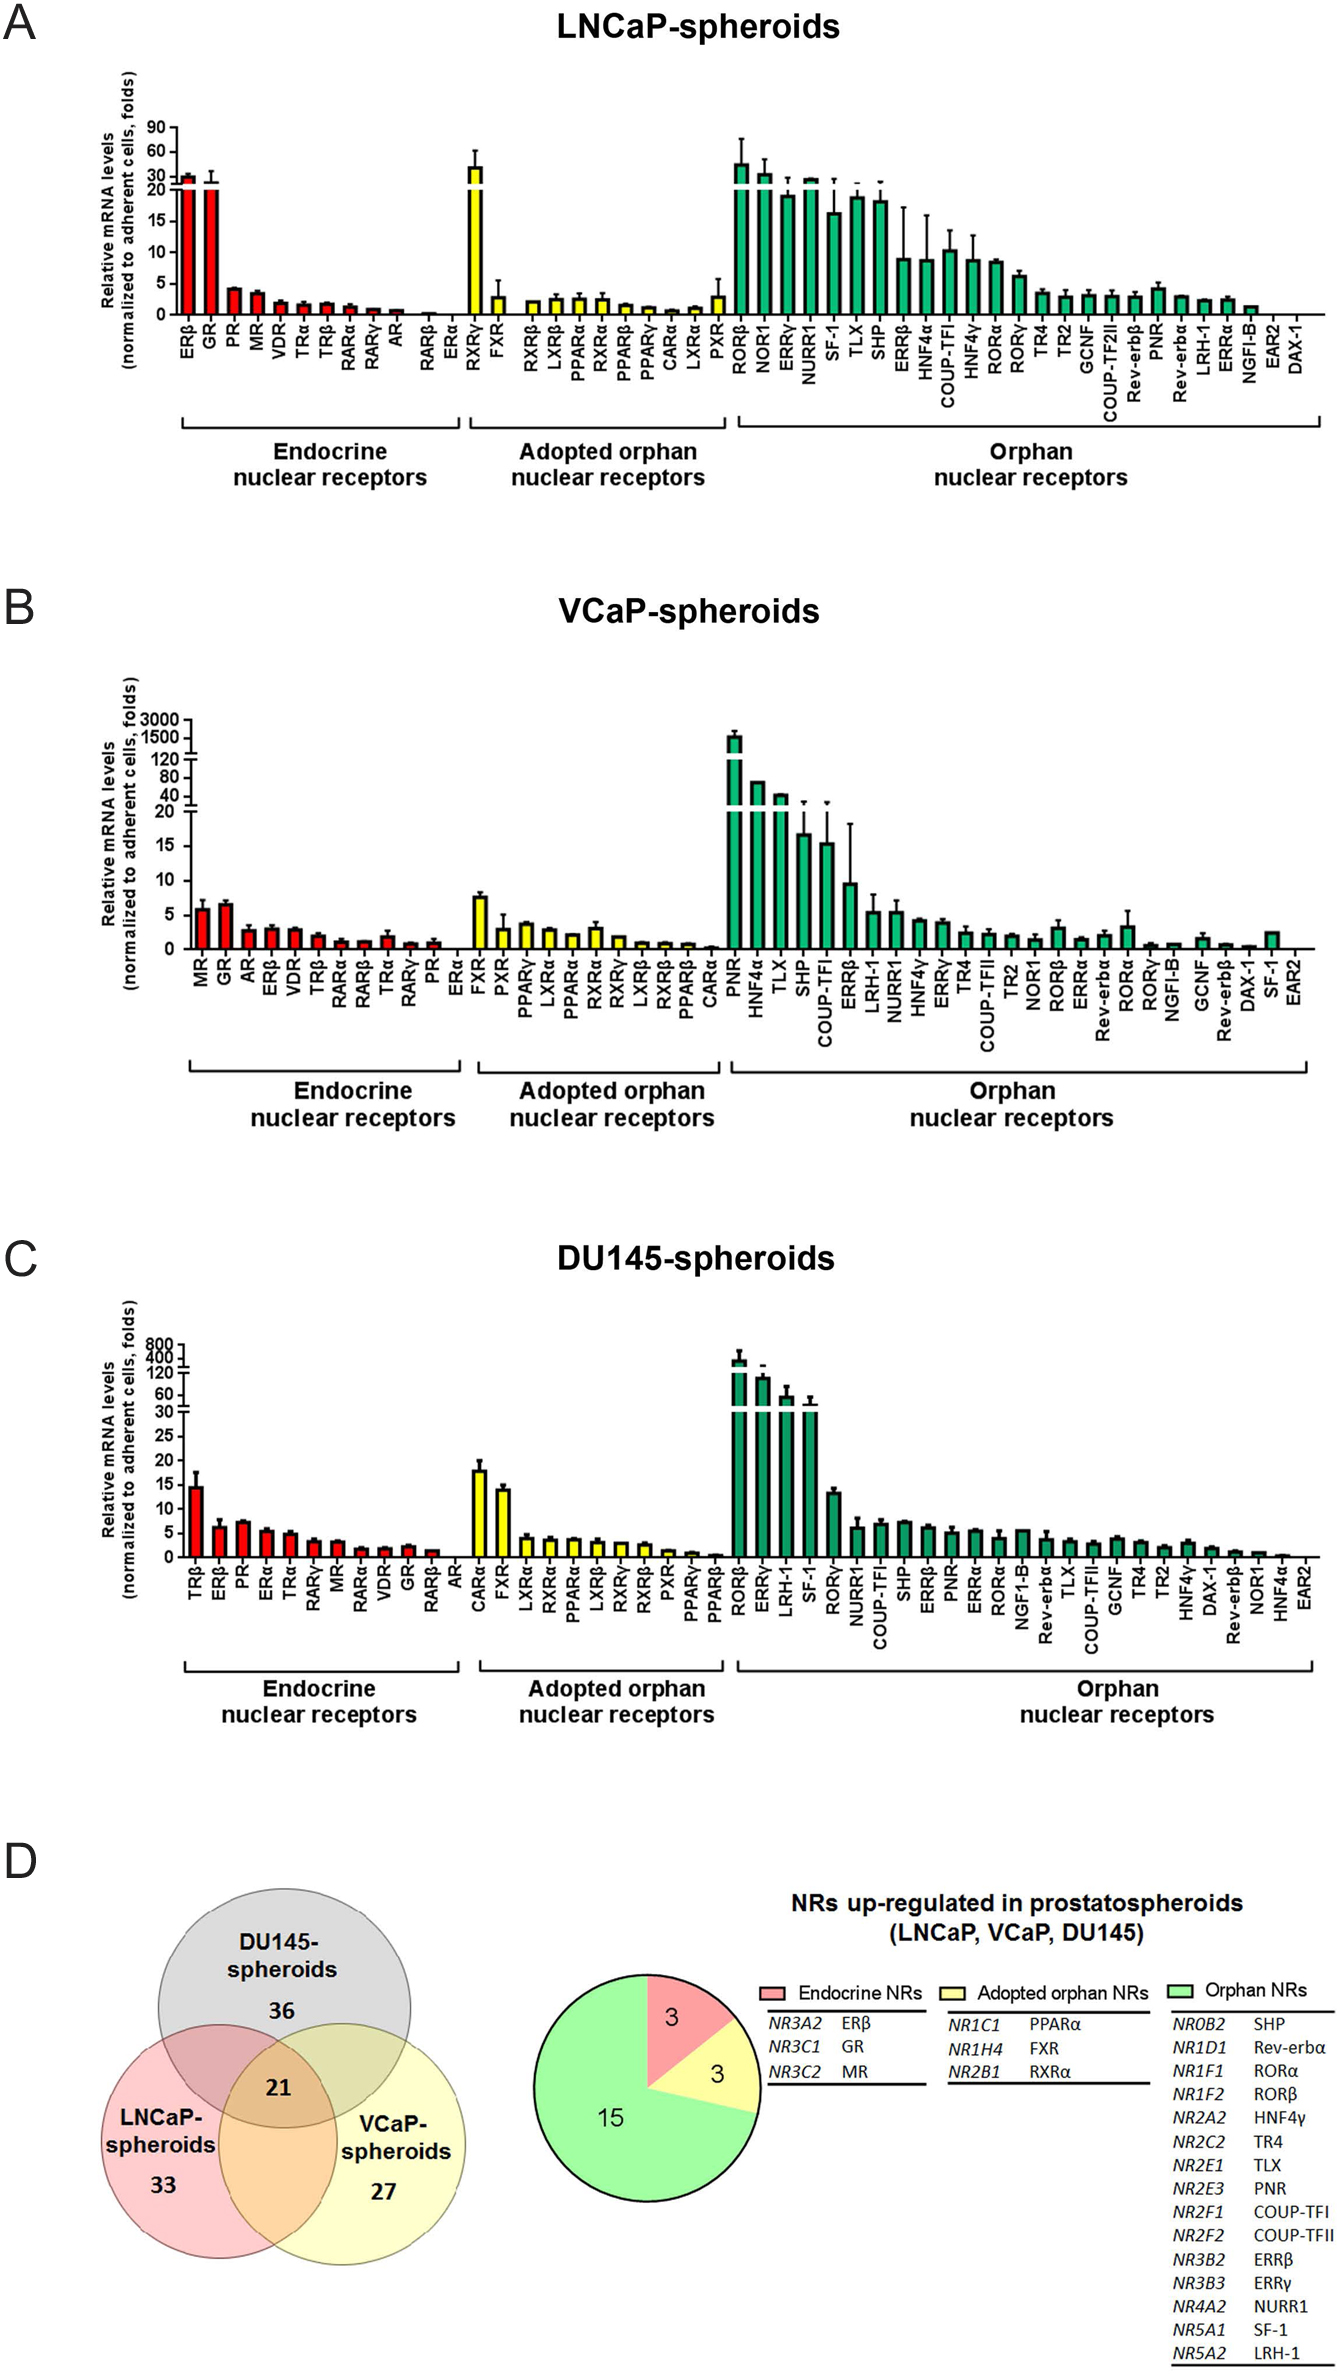 Nuclear receptor profiling in prostatospheroids and